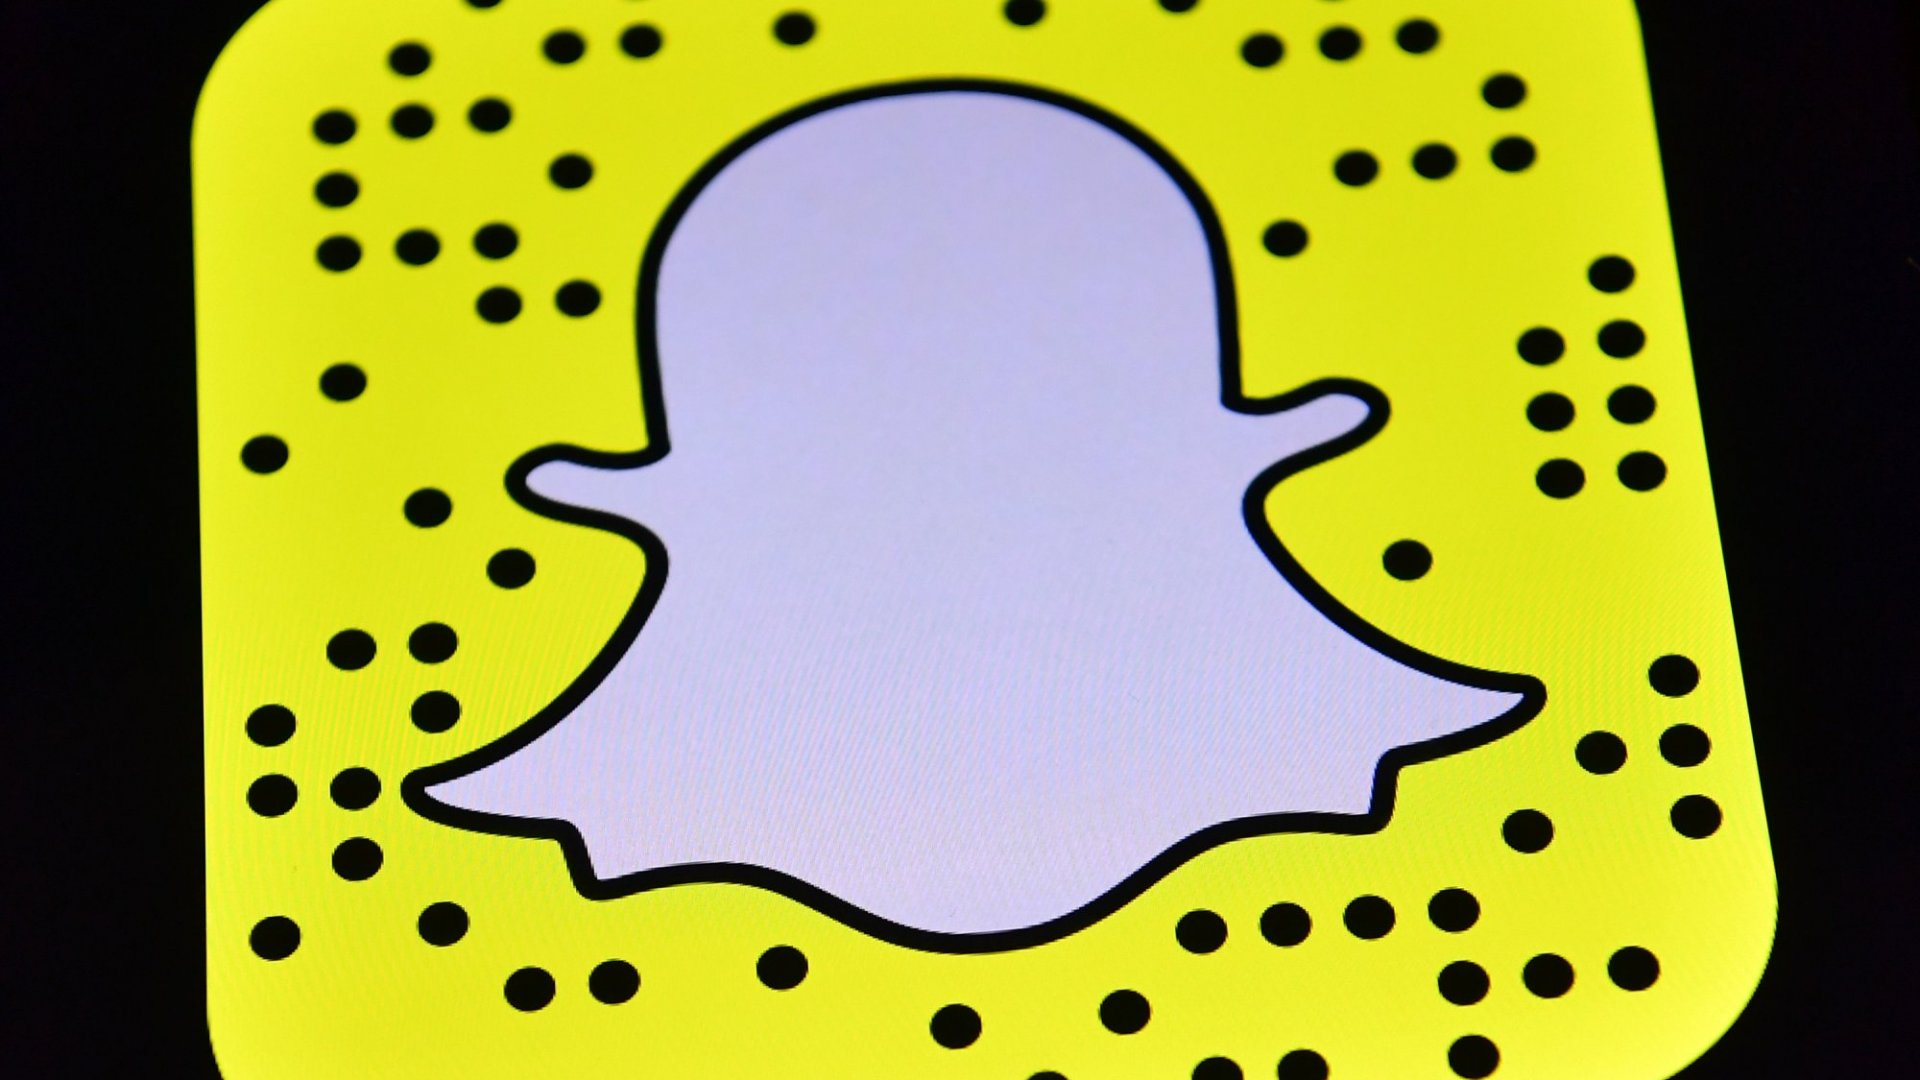 Snapchat Just Launched a New Feature That Will Change the Way We Use Social Media